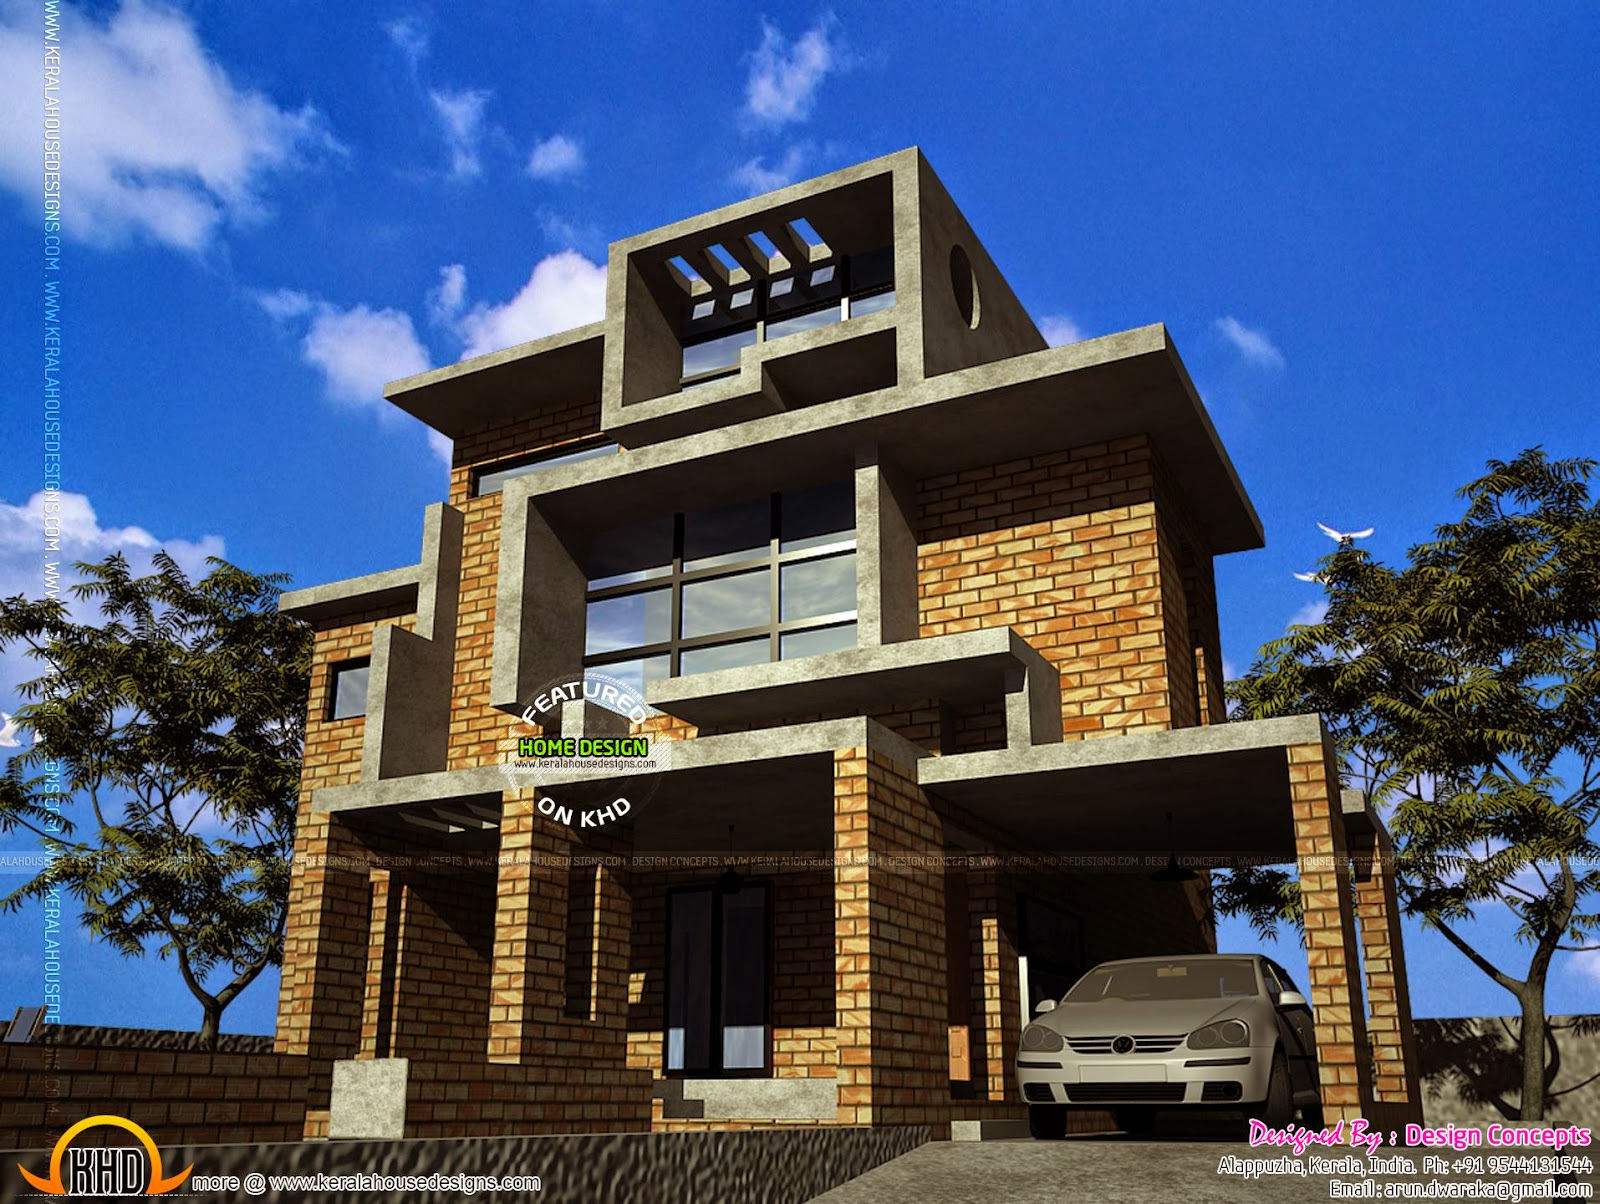 Brick house design in kerala kerala home design and for Brick house designs